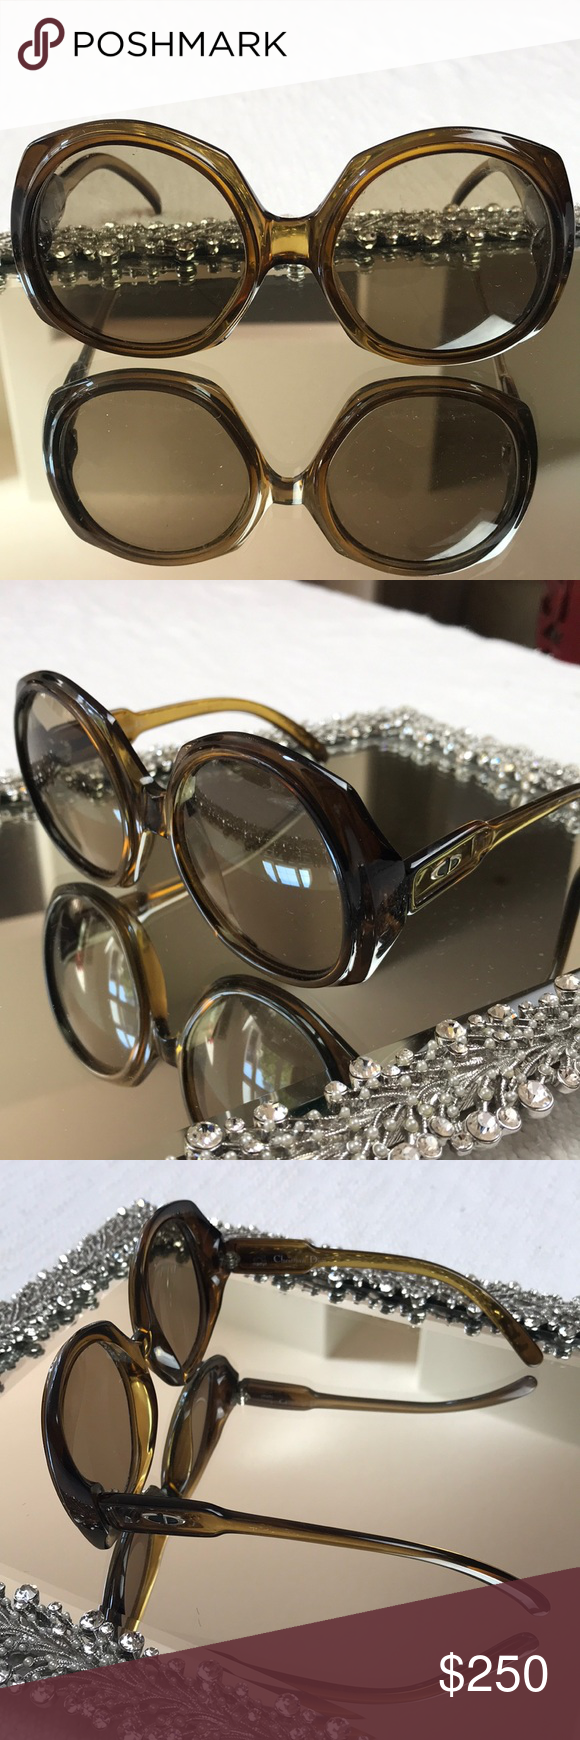 51b54e5ce9ac Vintage Christian Dior round Large sunnies Vintage Christian Dior round  Large sunnies Hater blockers Dior Accessories Glasses